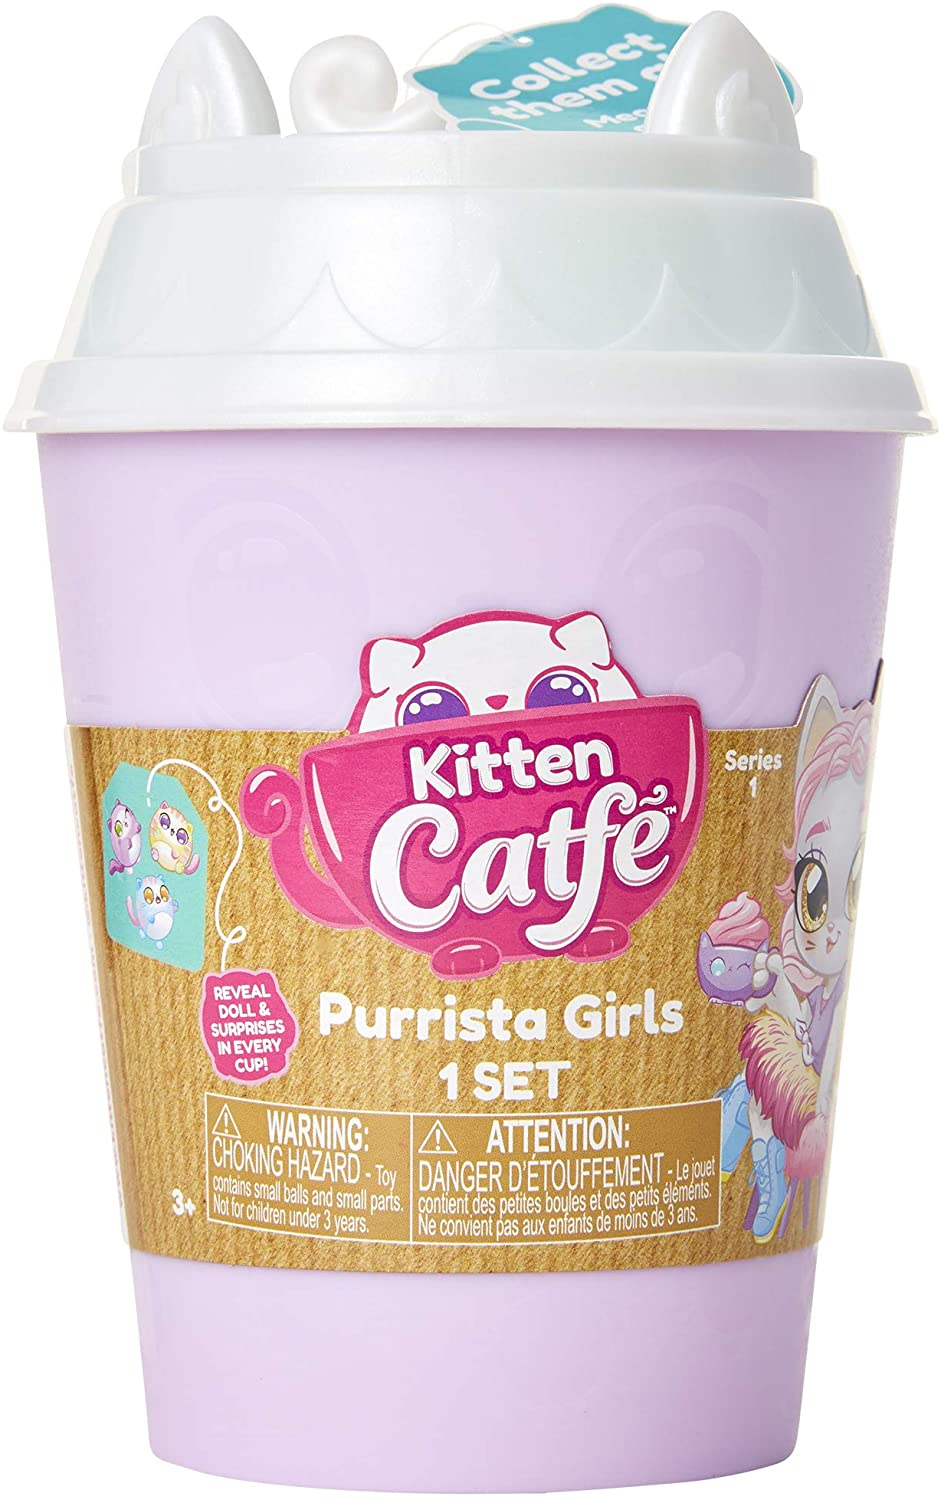 Kitten Catfe Purrista Girls Series 1 | Spellbound Games